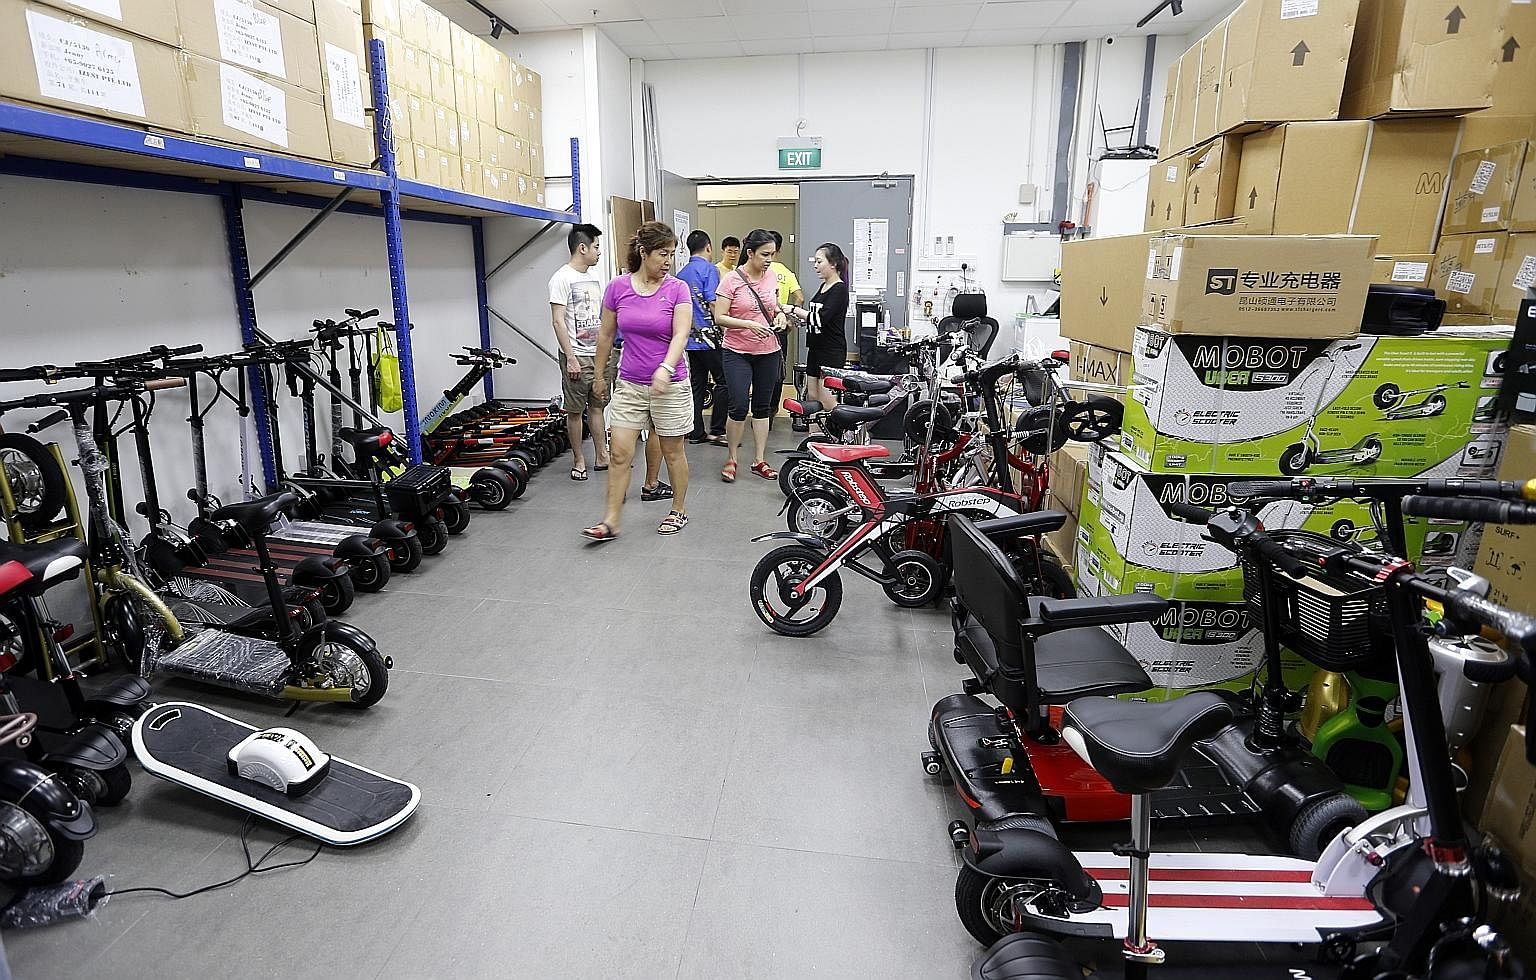 E Scooter Sales Take Off After Bike Safety Rules Kick In Electric Wiring Schematic Scooters For Sale Singapore News Top Stories The Straits Times